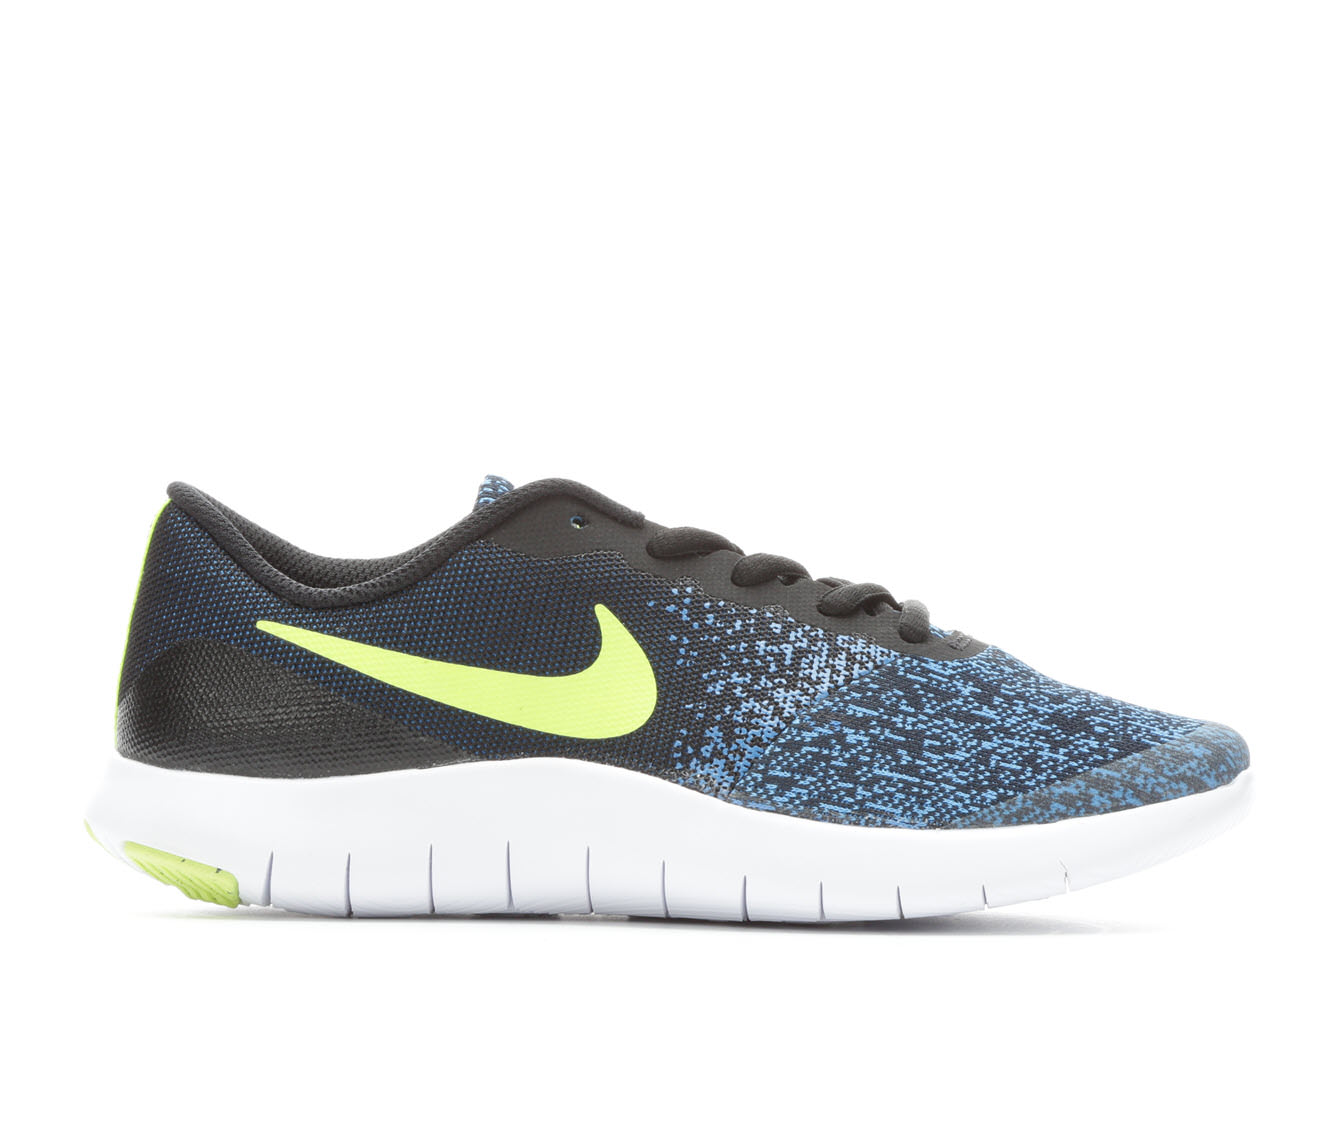 Boys' Nike Flex Contact Running Shoes (Blue)